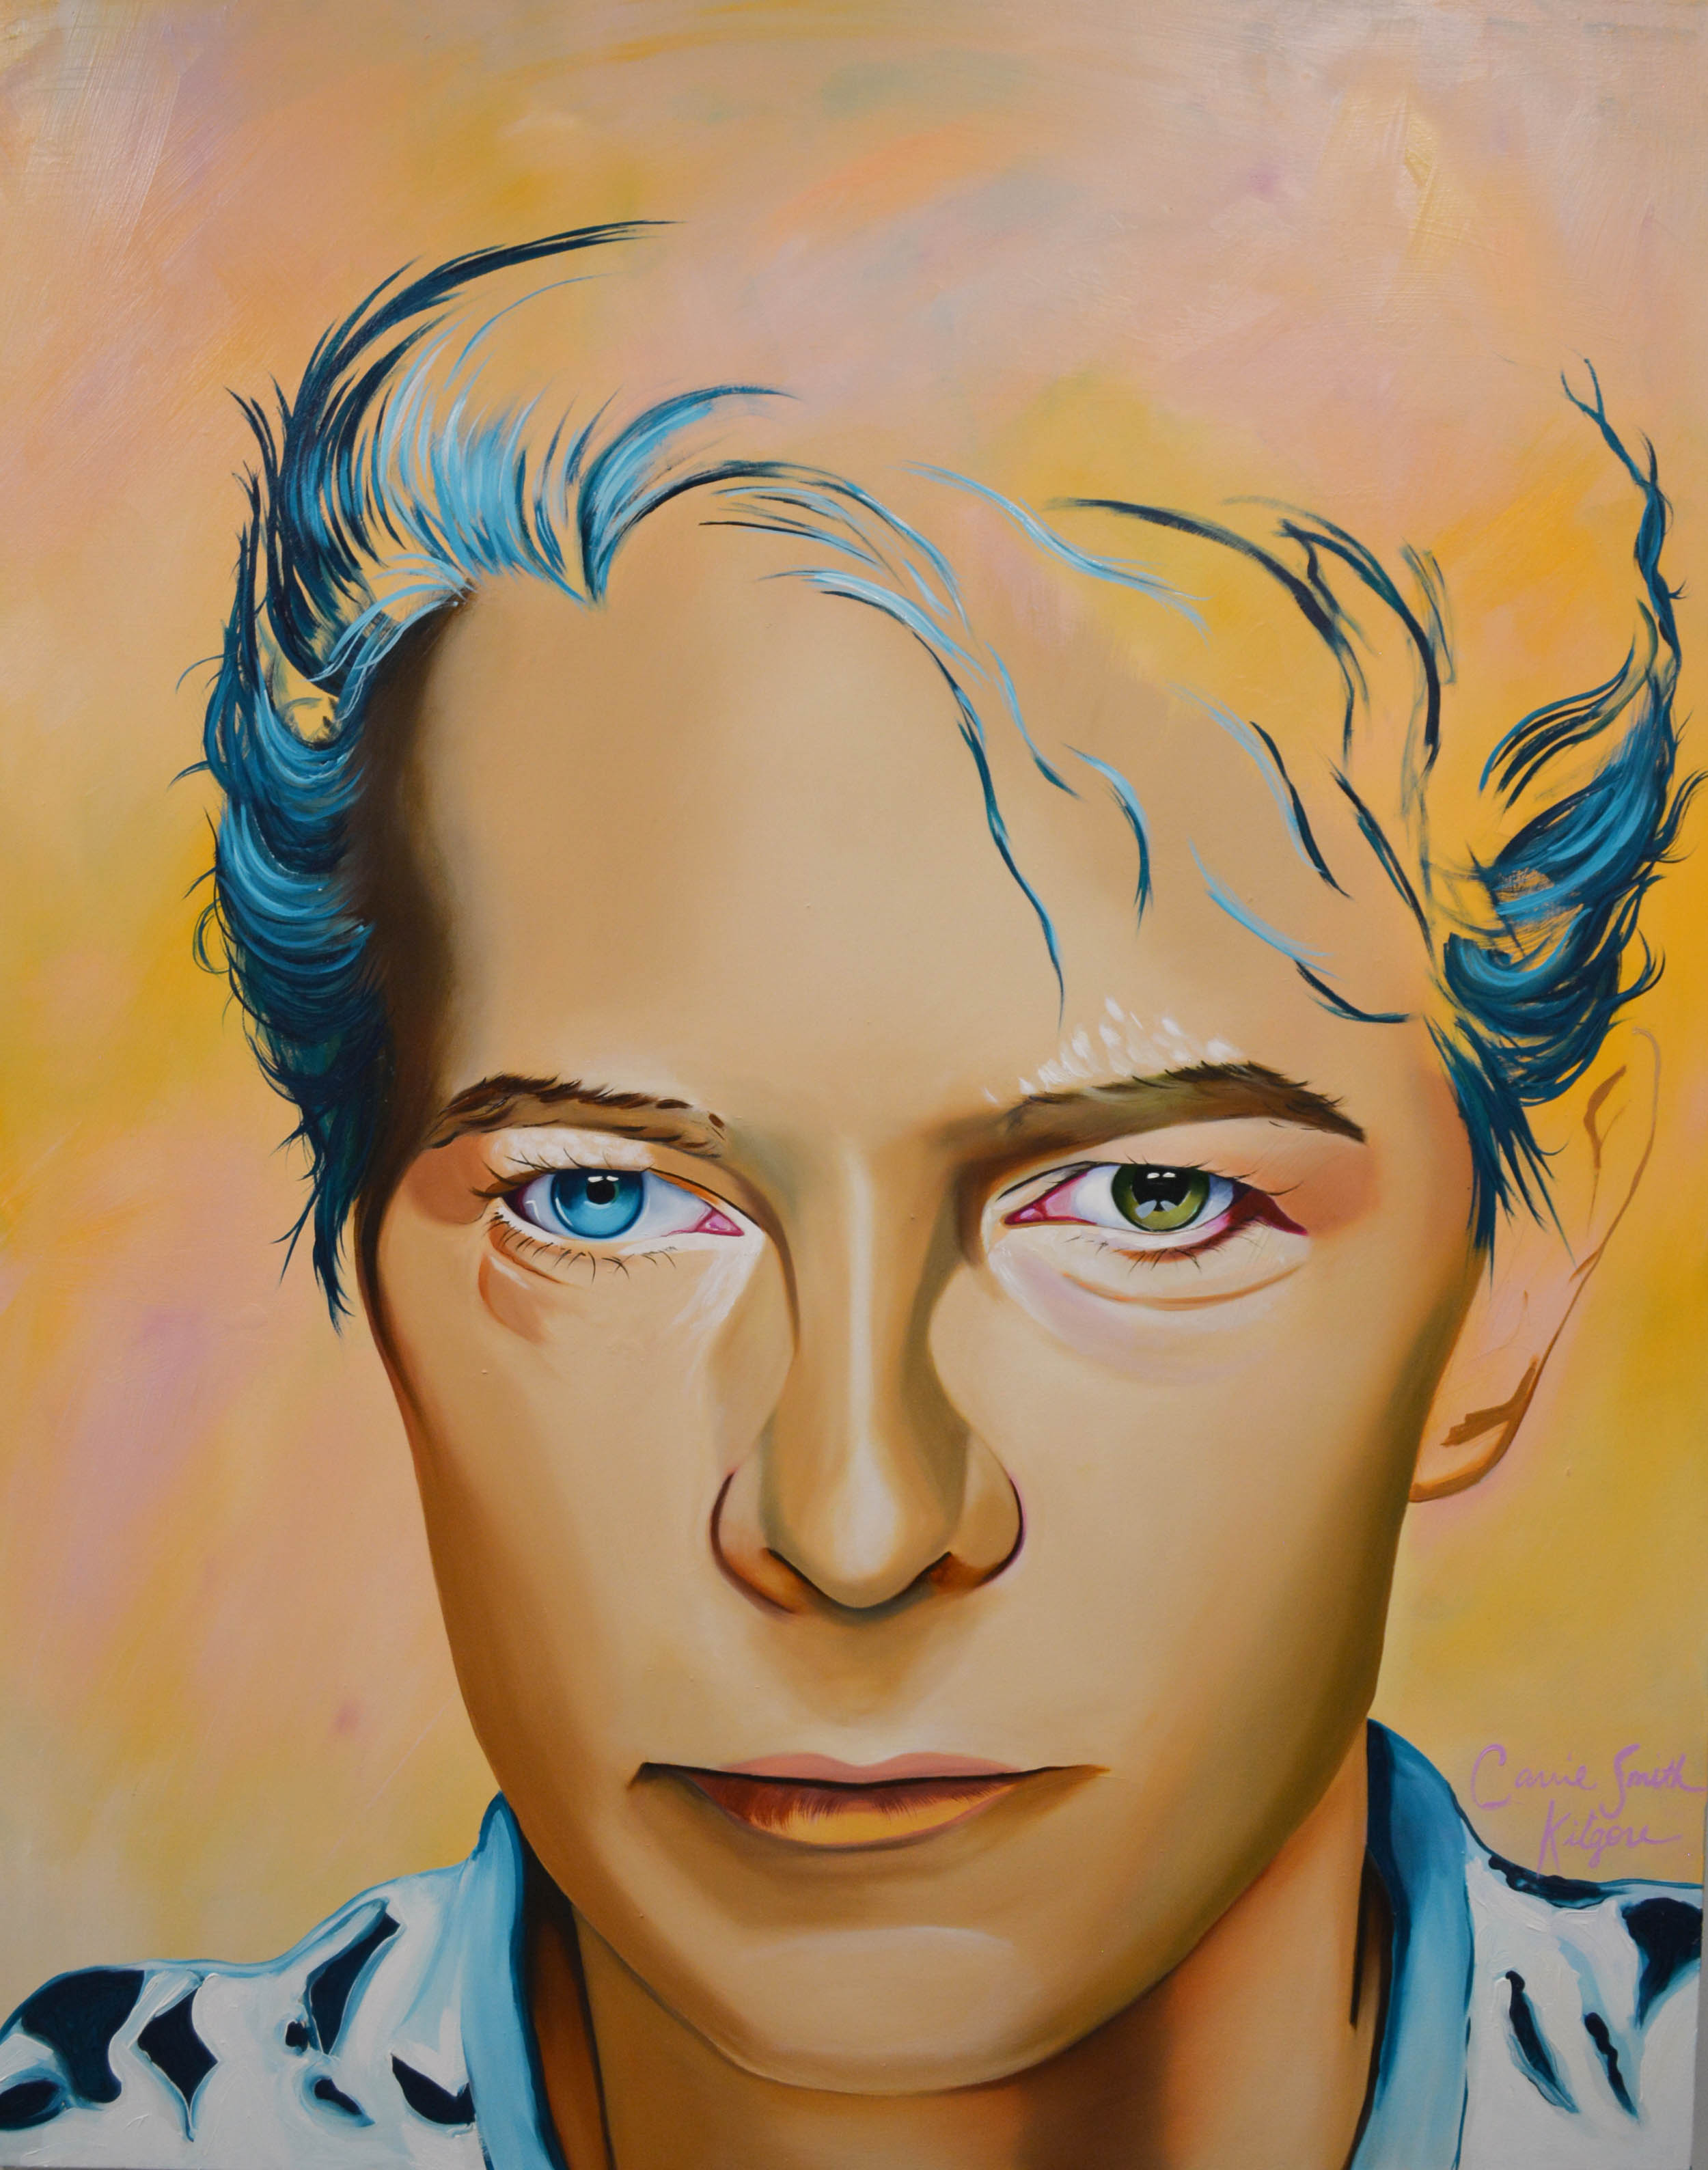 David Bowie (5ft x 4ft) by Carrie S. Kilgore.jpg